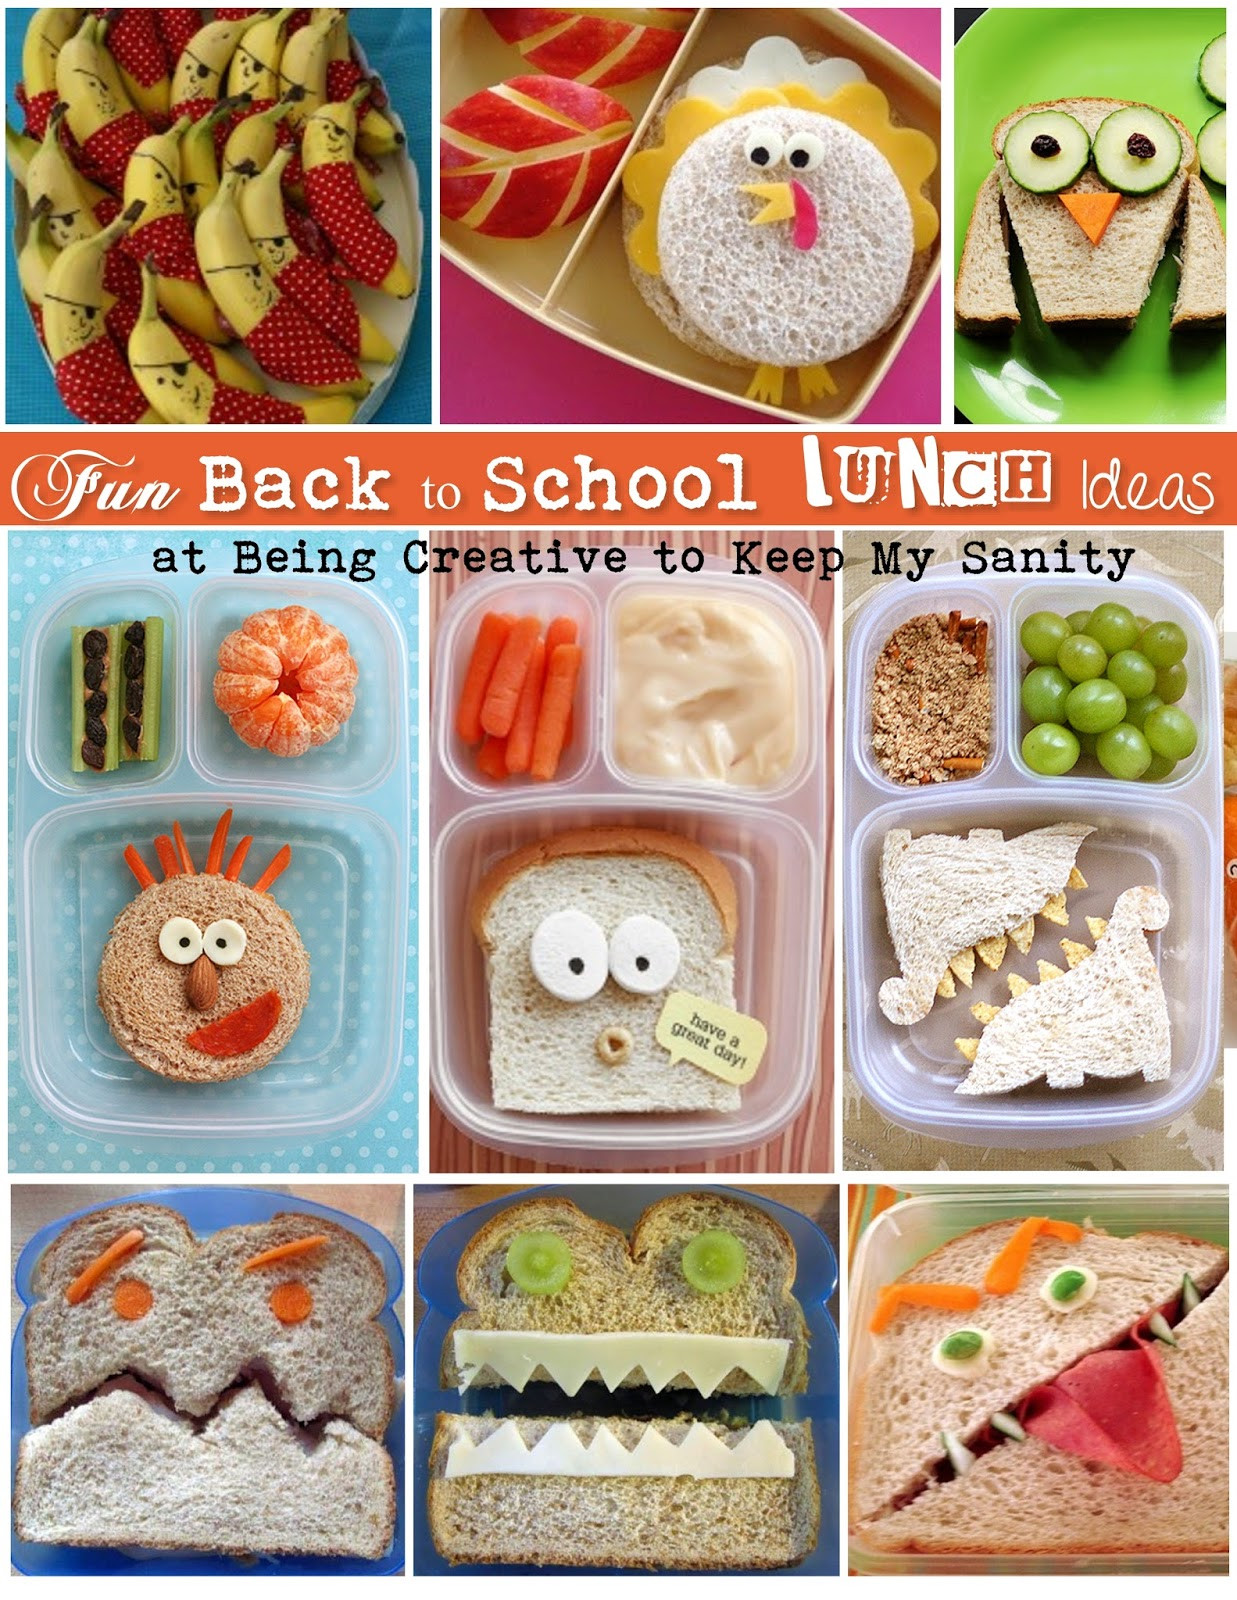 Back To School Lunch Ideas  Being creative to keep my sanity Back to School Lunches